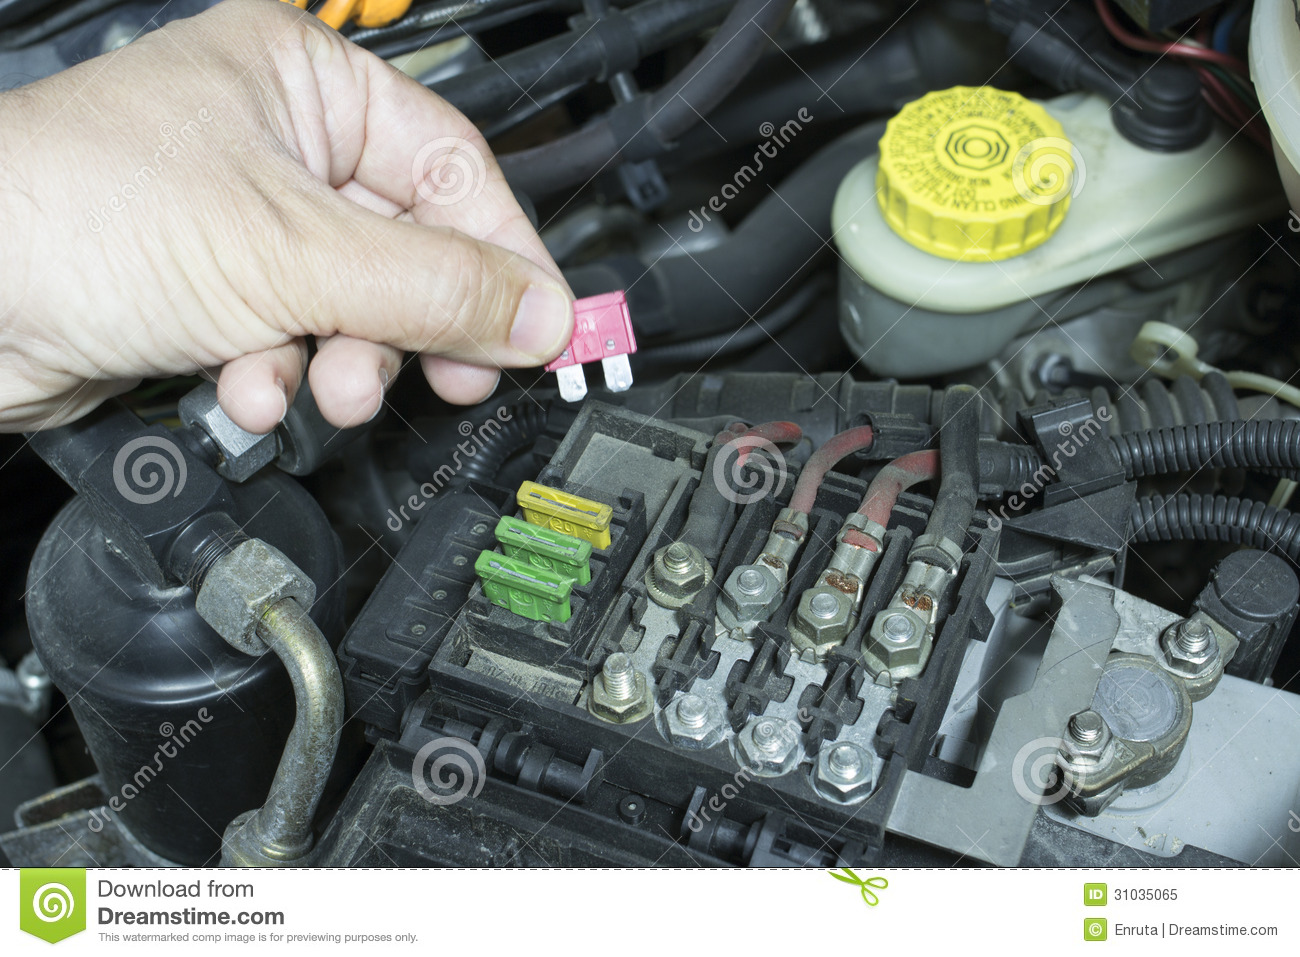 car fuse box blown fuse box car stock image image of repairing  electric 31035065  fuse box car stock image image of